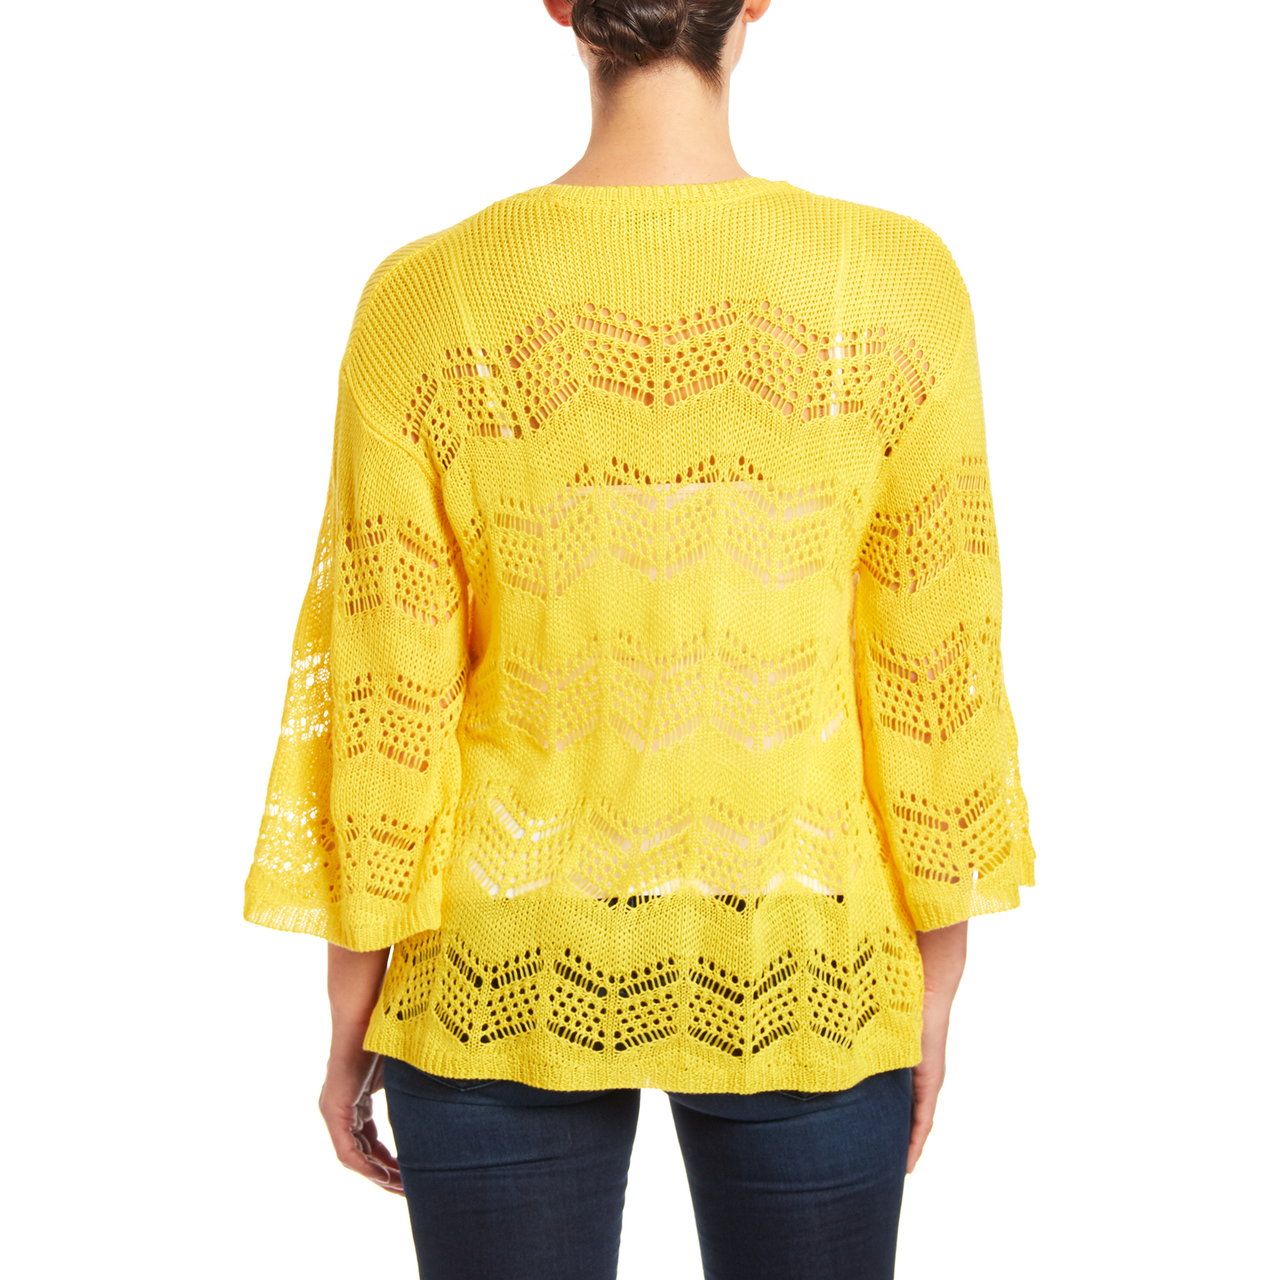 Bell Sleeve Open Stitch Cardigan in Sunburst